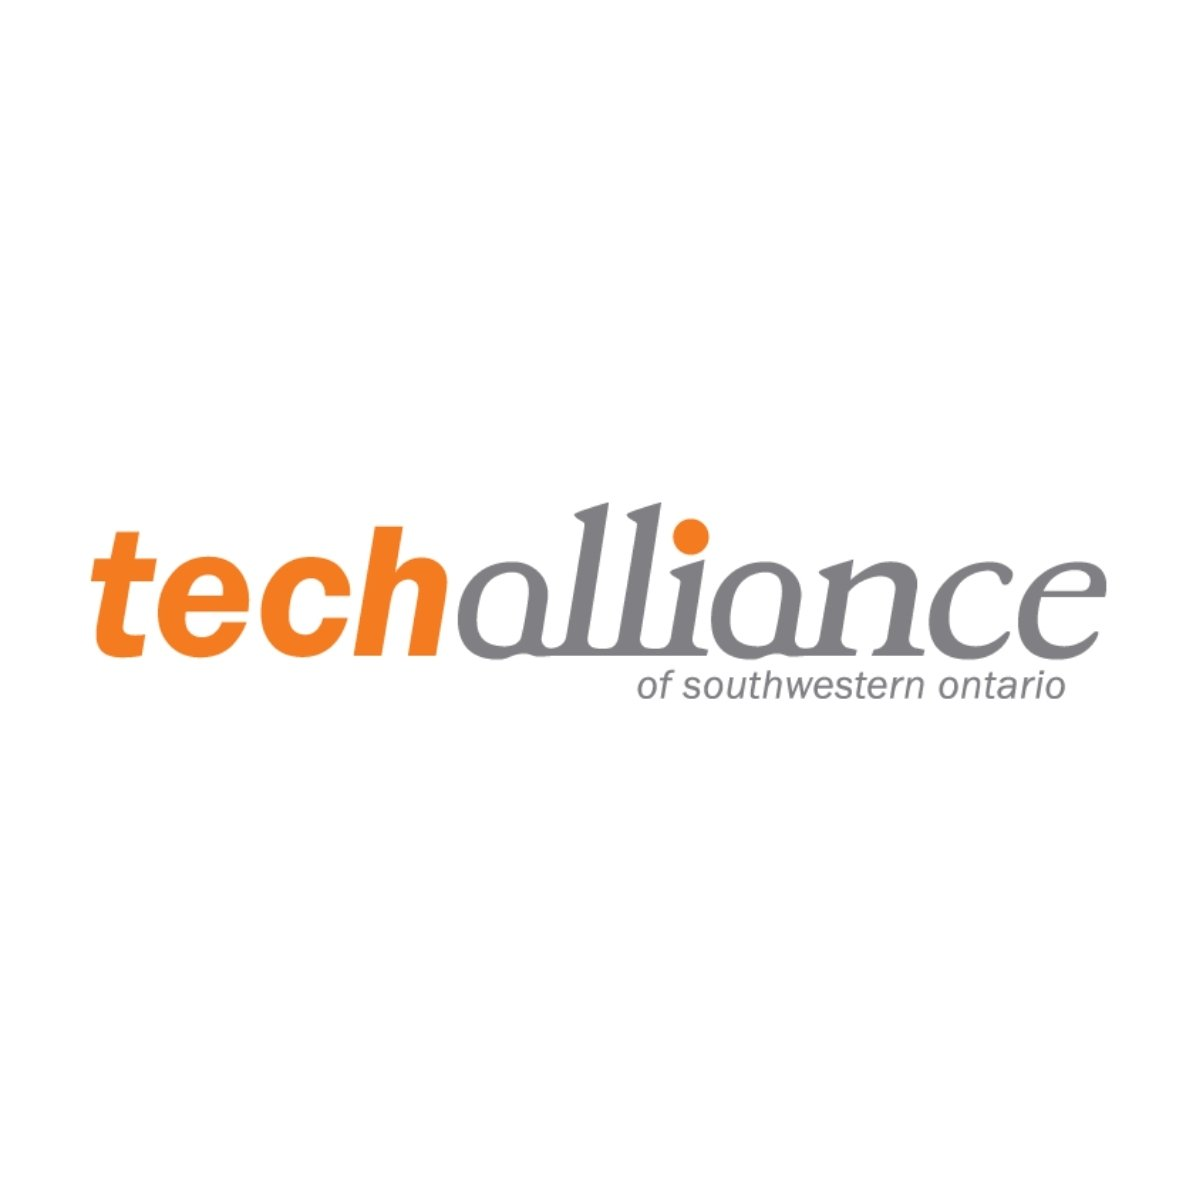 Techalliance logo